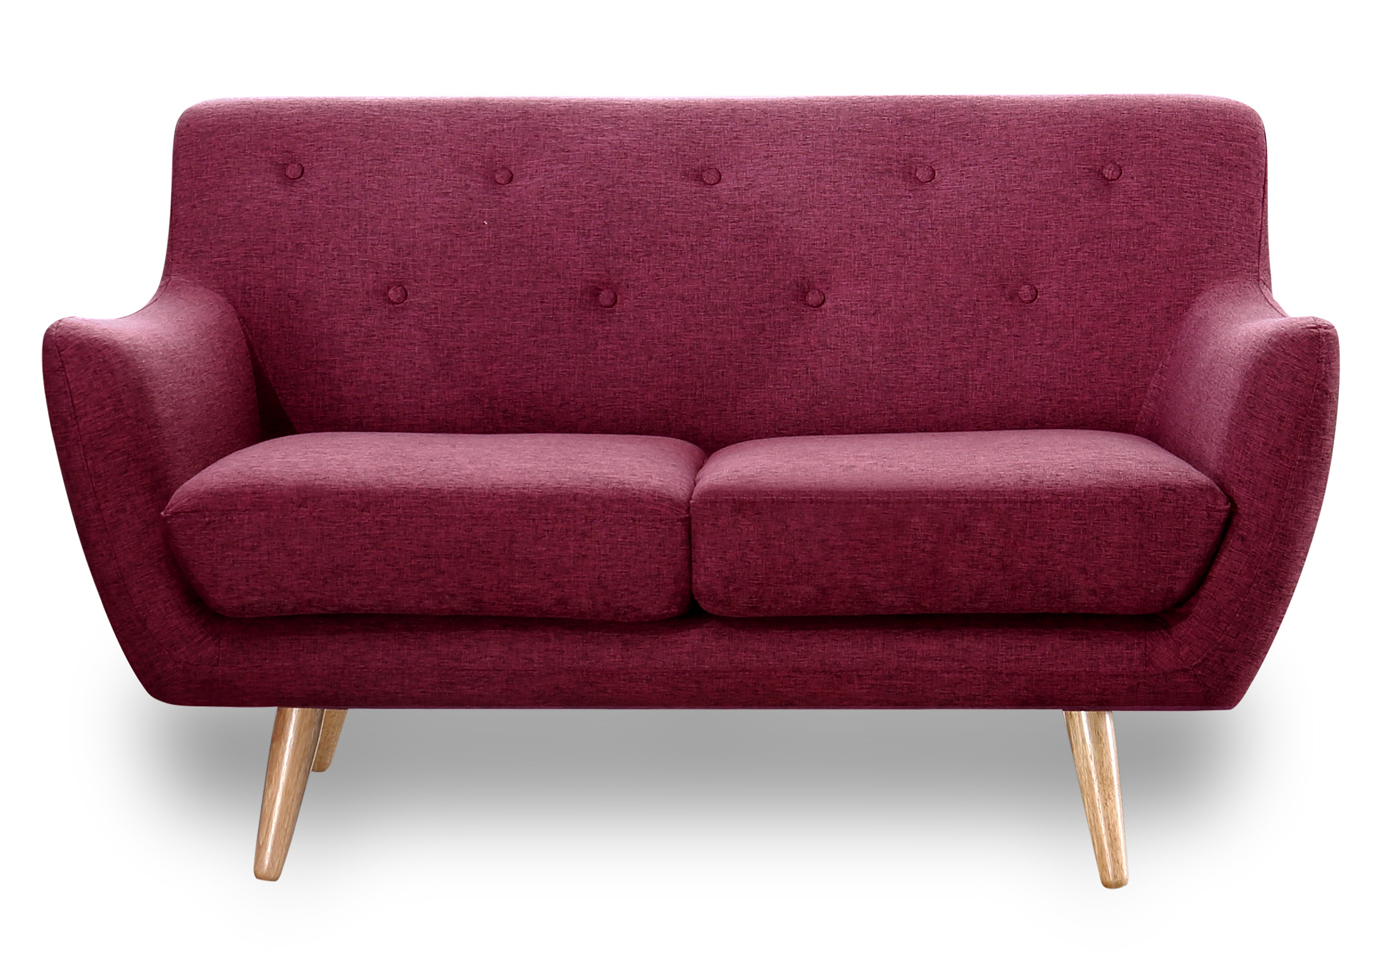 Retro Scandinavian Compact Design Pink 2 Seater Sofa